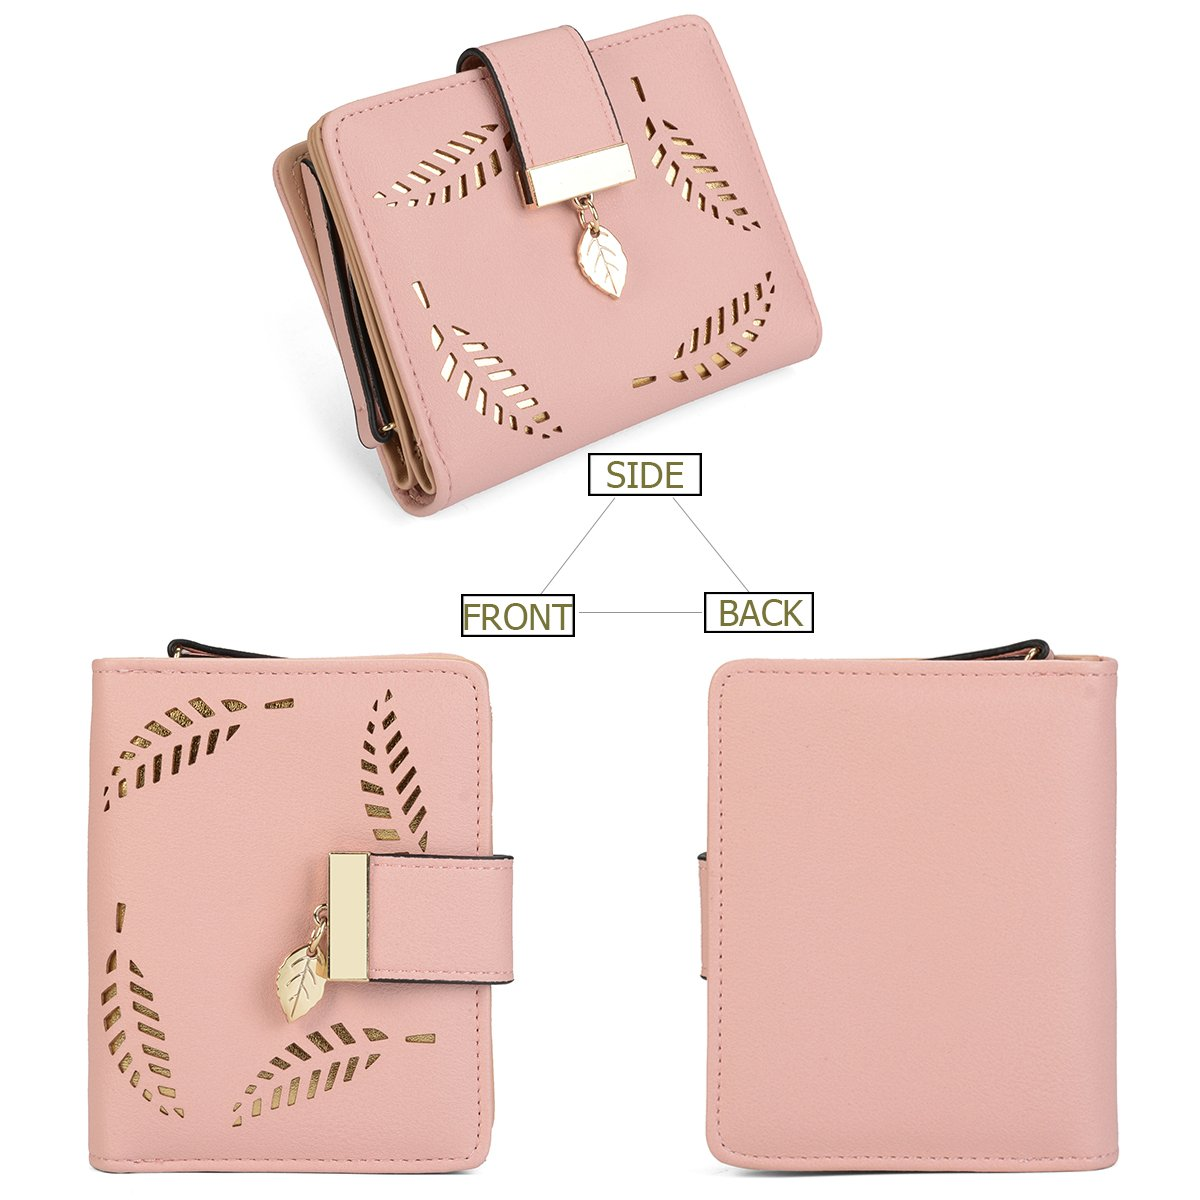 Women's Short Leather Wallet Leaf Bifold Card Coin Holder Small Purses Buckle Zipper Clutch,Pink-by Vodiu by vodiu (Image #2)